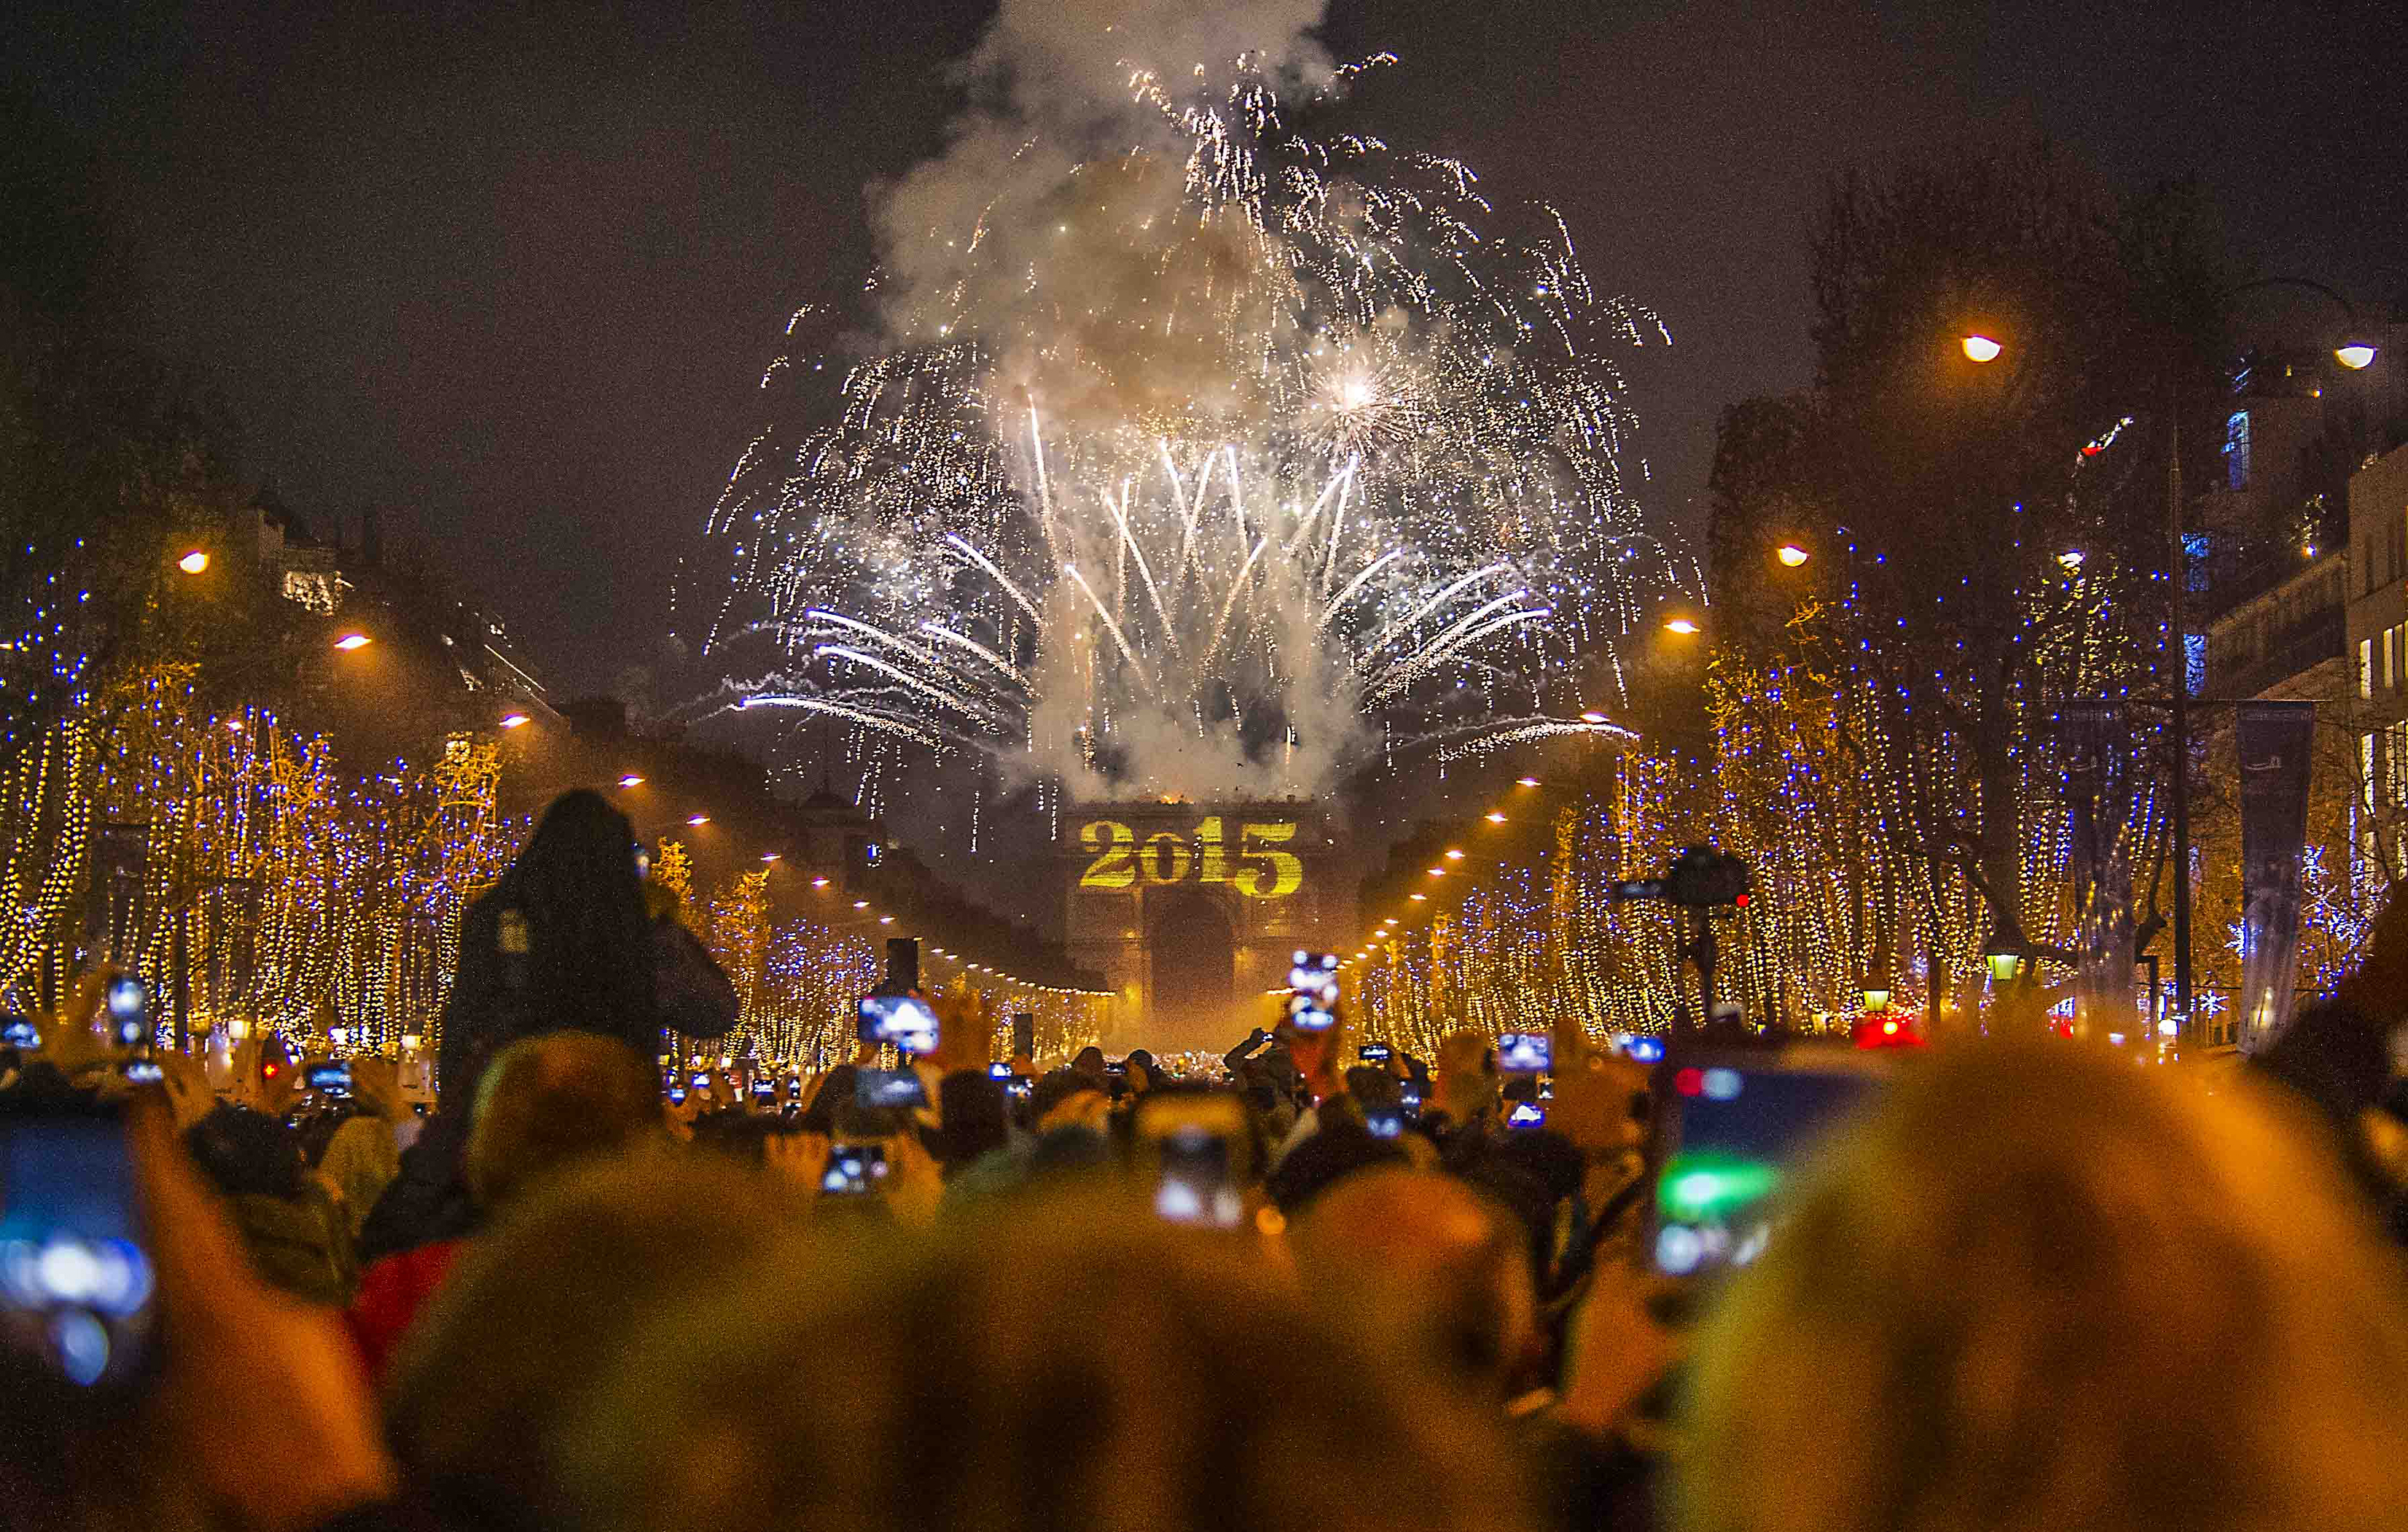 Paris on New Year's Eve